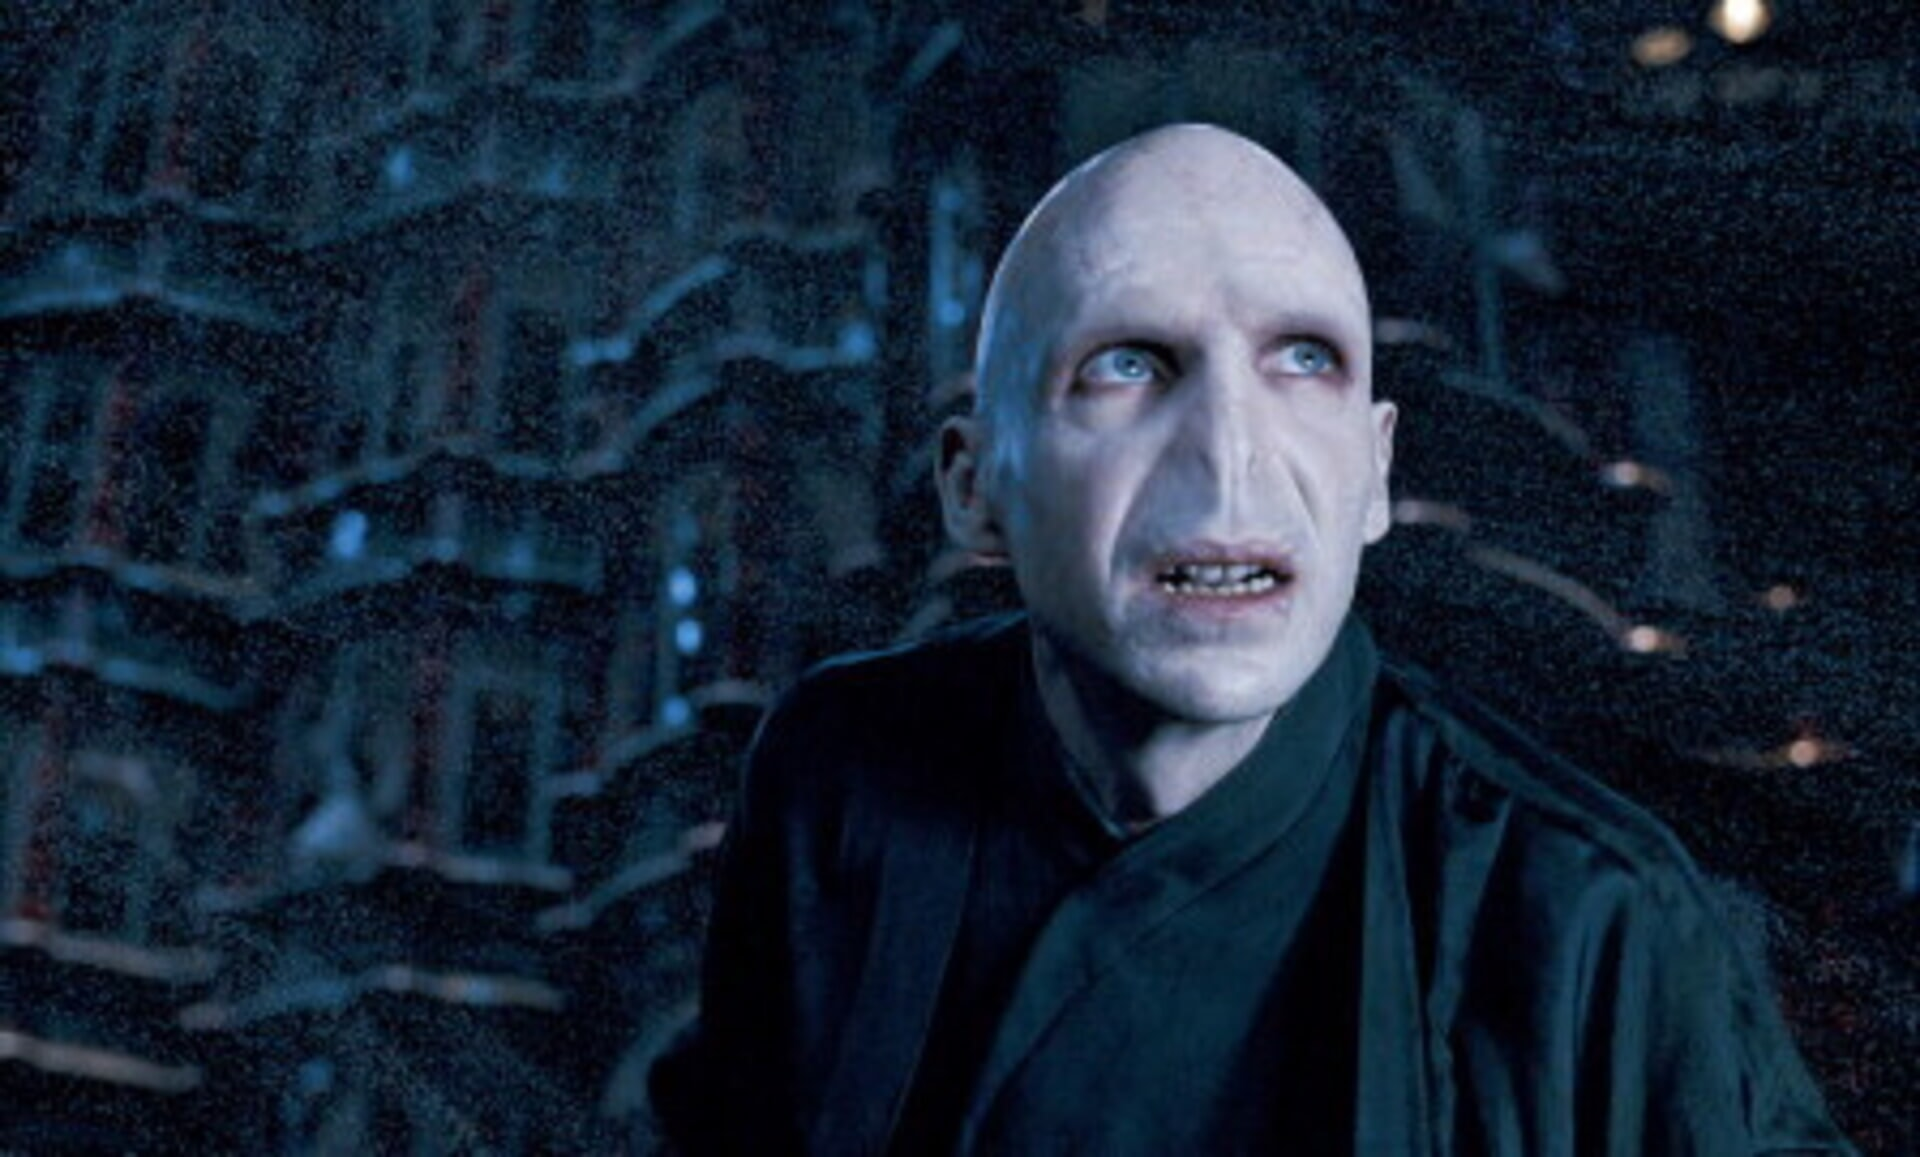 Harry Potter and the Order of the Phoenix - Image 32